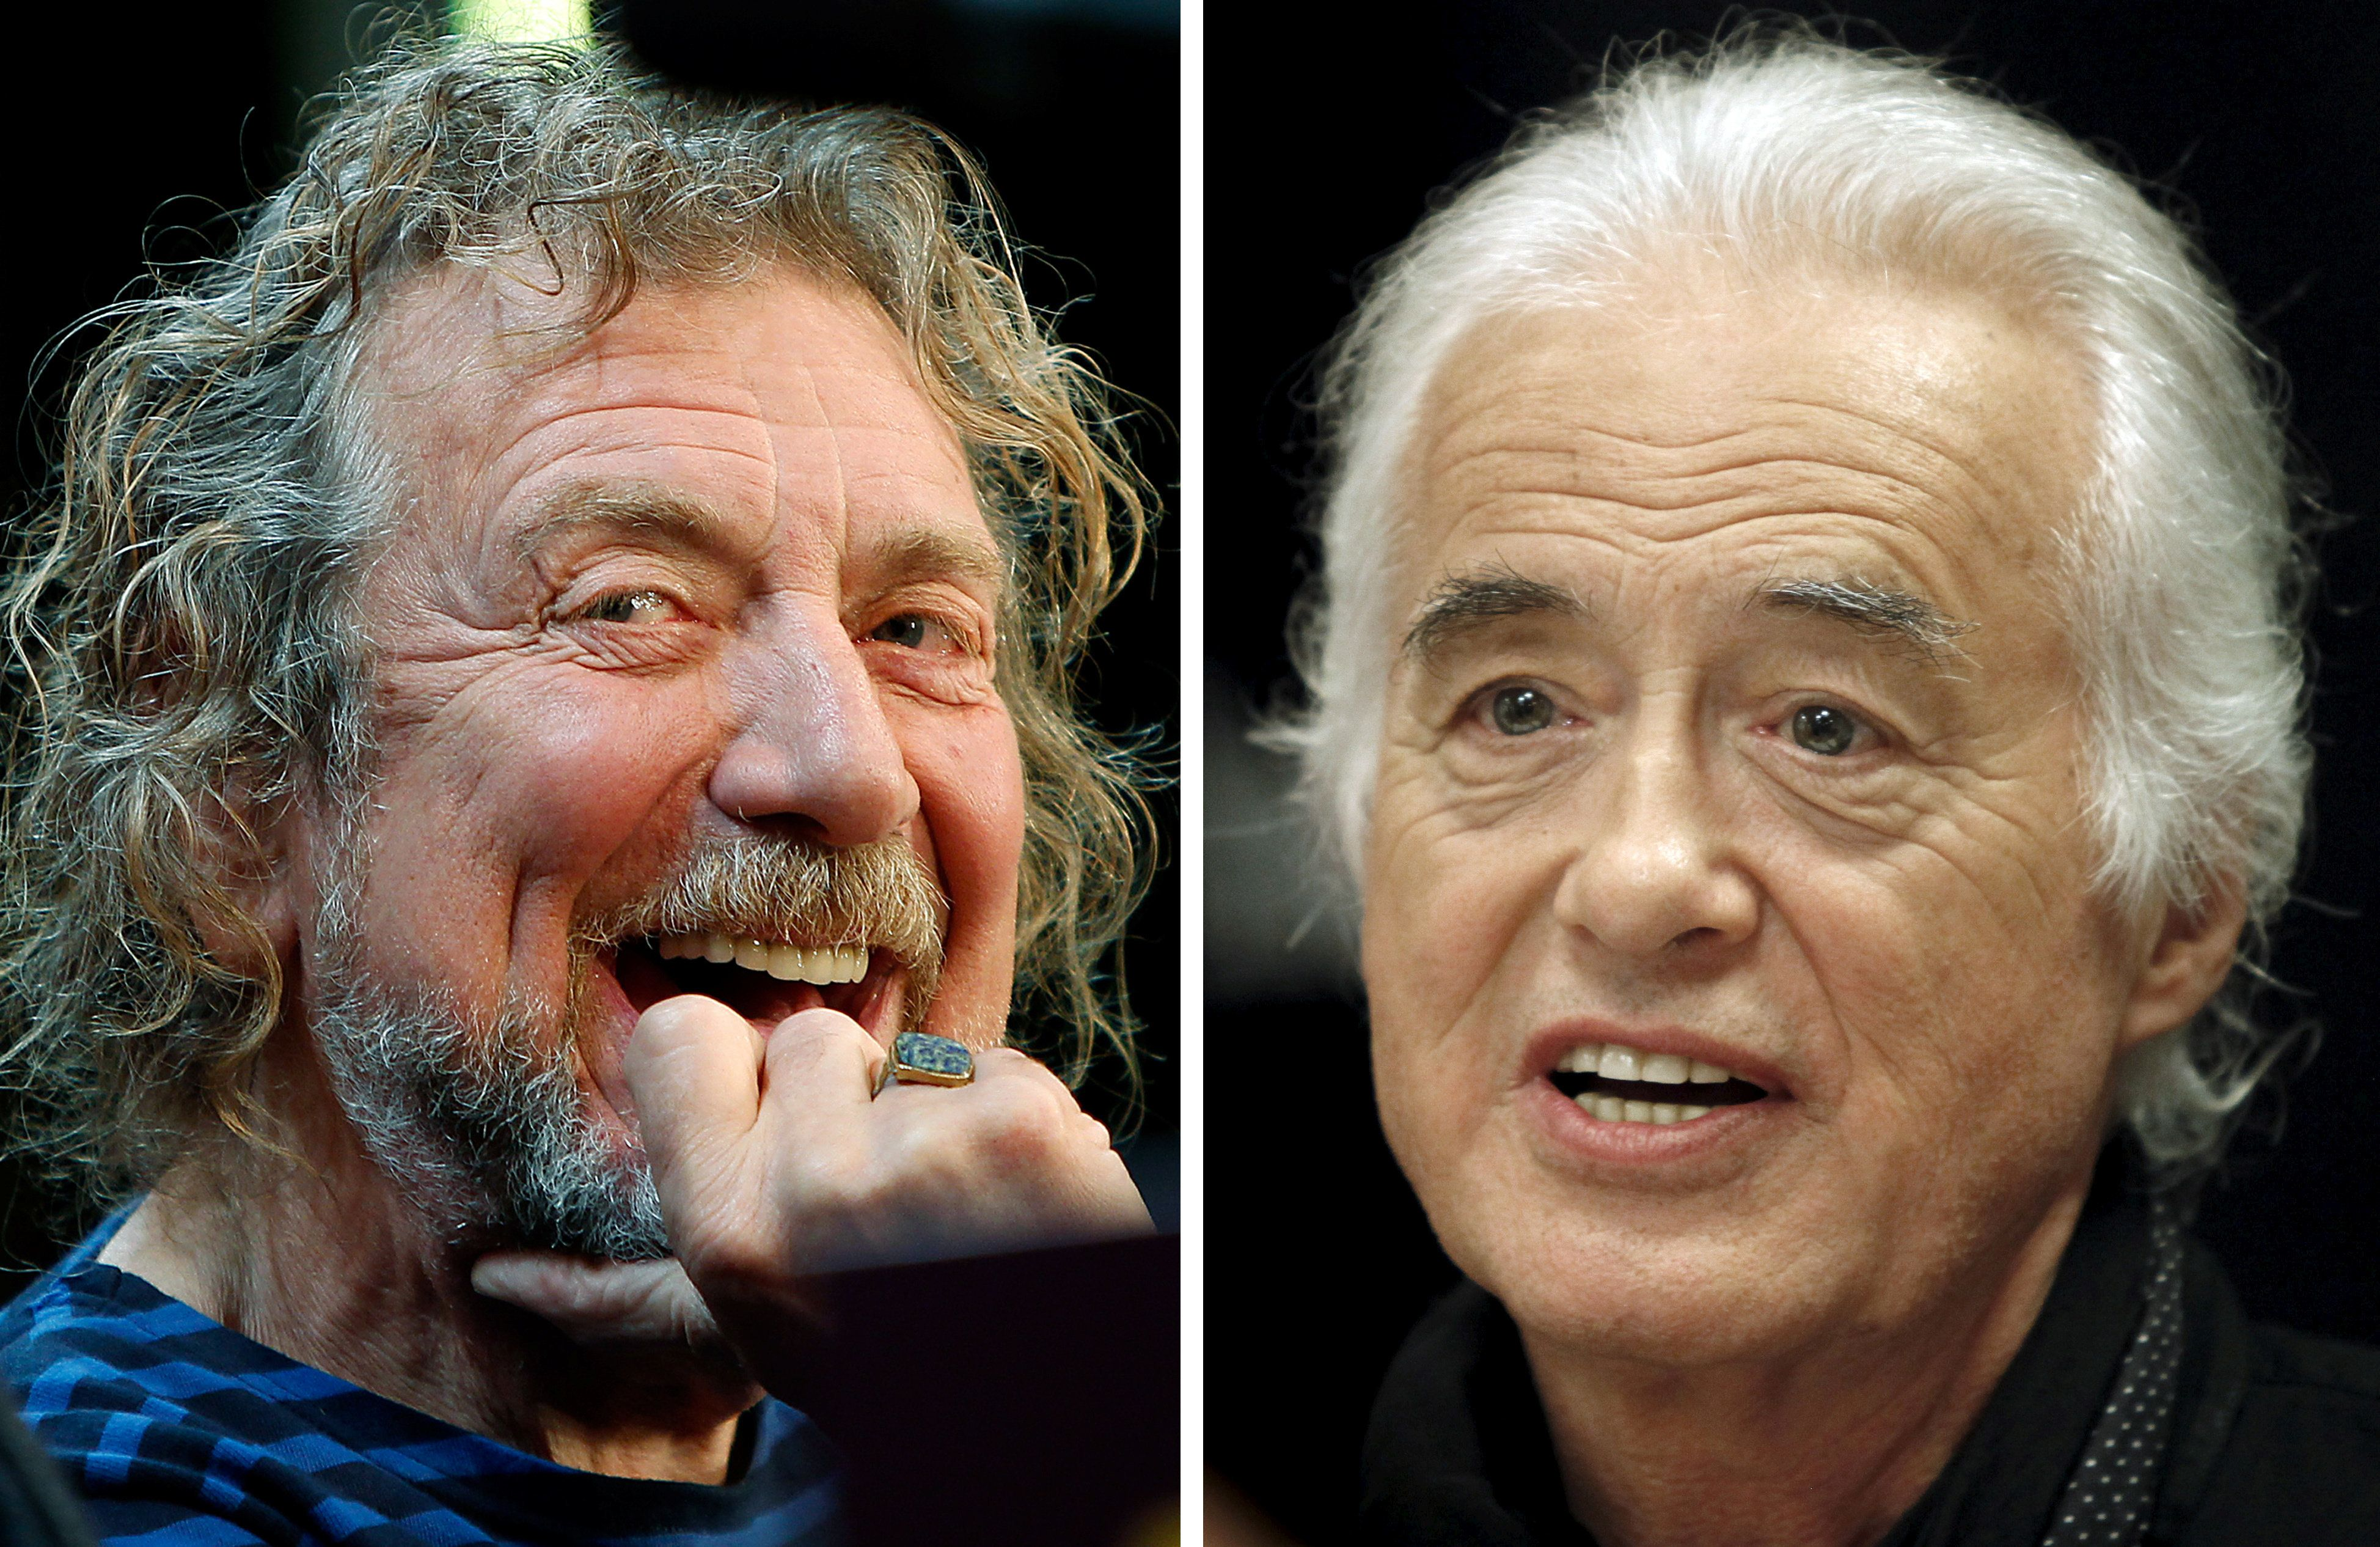 Led Zeppelin Did Not Steal 'Stairway To Heaven' Riff, Jury